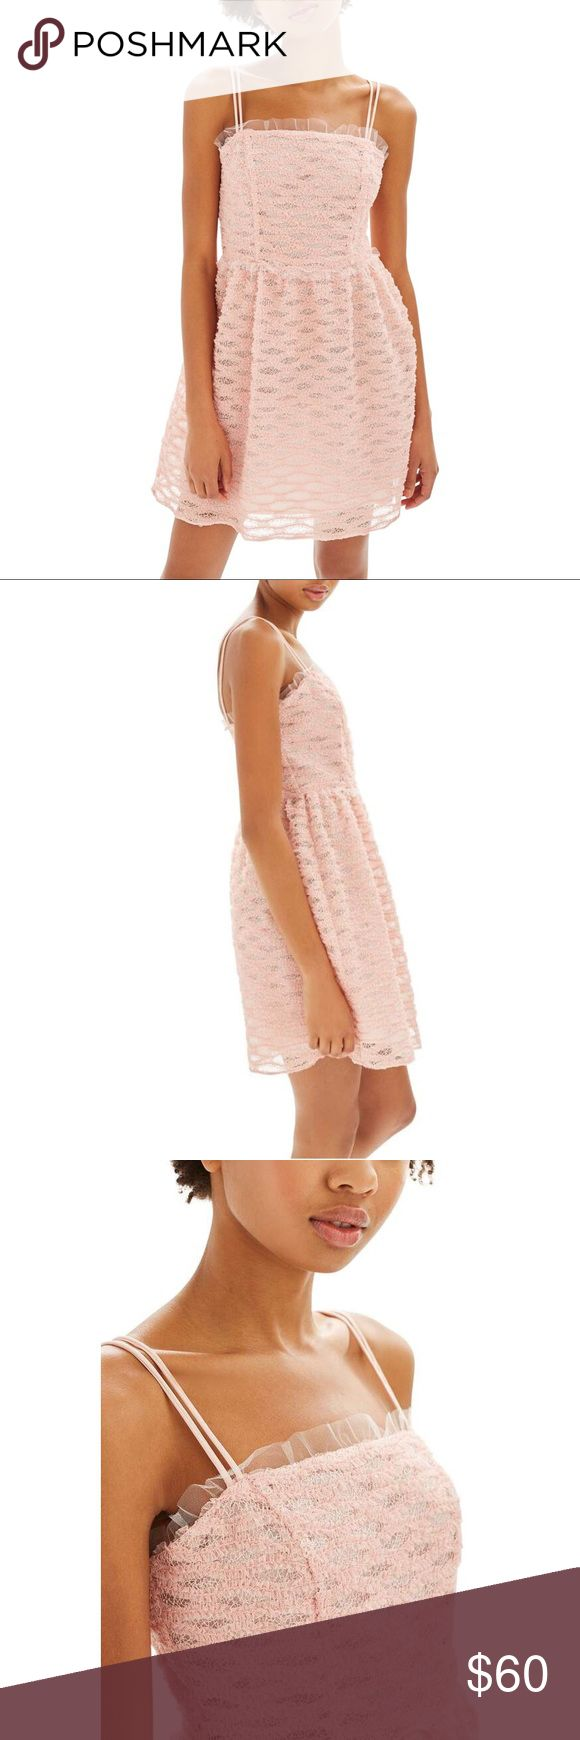 TOPSHOP Blush Pink Ruffle Tulle Trim Prom Dress New Without Tags! TOPSHOP Blush Pink Tulle Trim Mini Ruffle Prom Dress US Size 4  Retail $130.00 Master prom-perfection in this blush dress in trending tulle.  In a girlie silhouette, it comes with double strap detail and is finished in a mini length.  Pair with metallic heels for a head-turning result 100% Polyester.  Machine wash. Color: Blush Sold Out In All Stores And Online! Please Review All Photos Prior To Purchase All Sales Are Final…